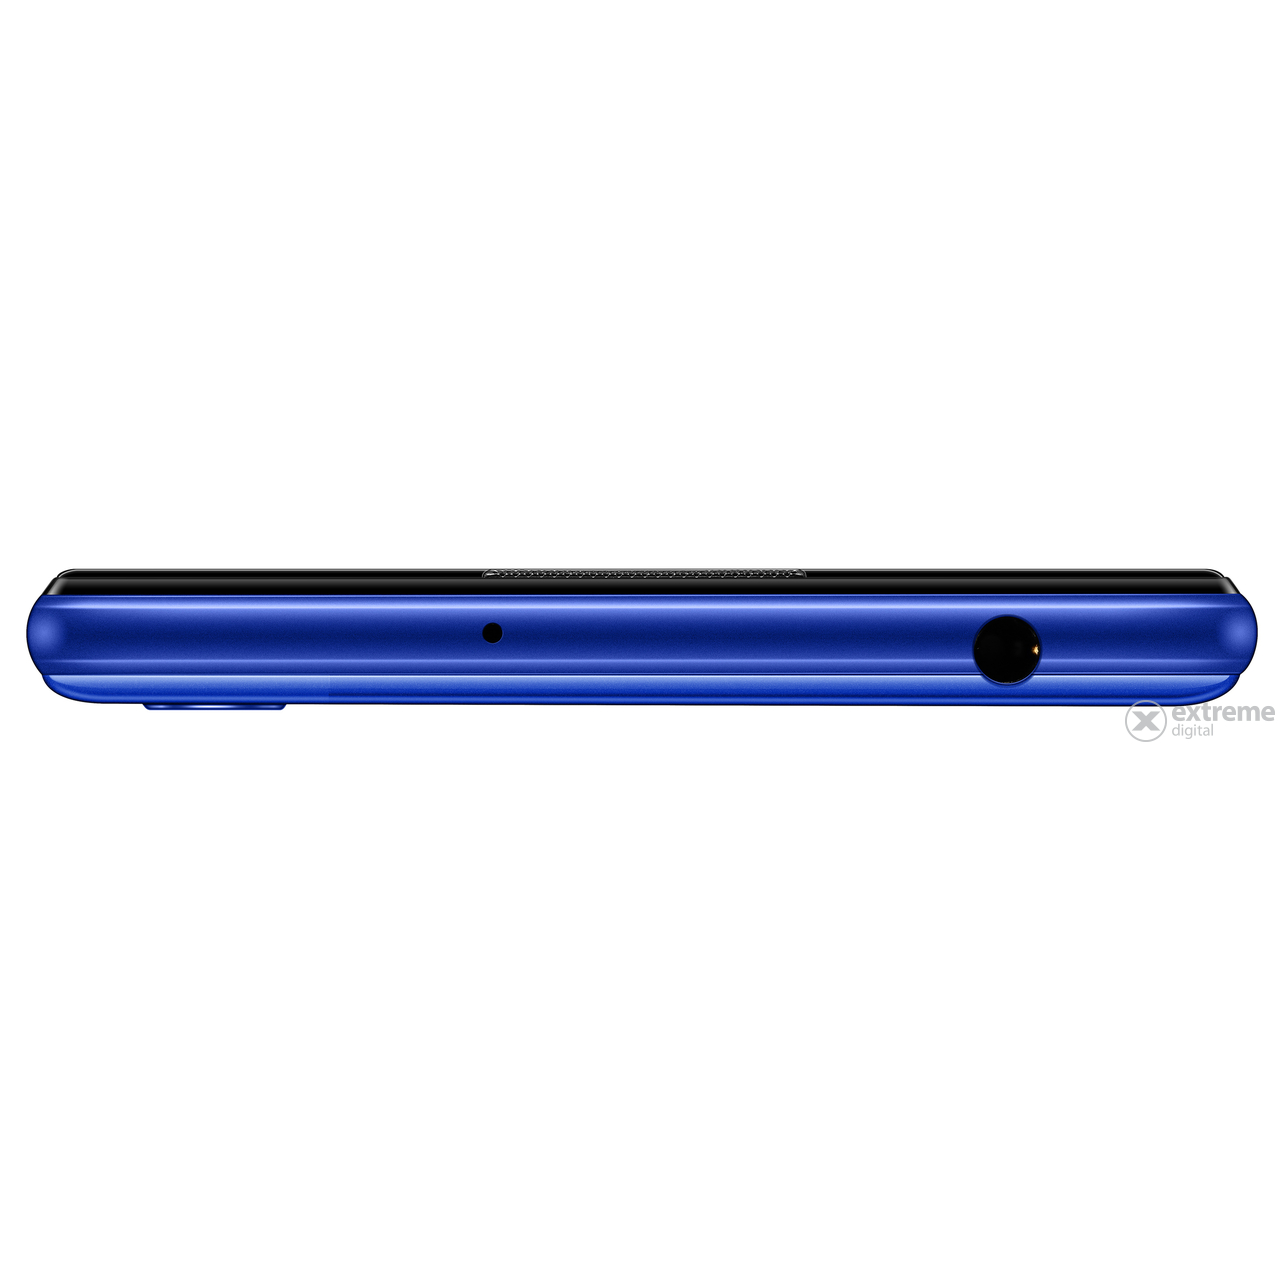 Honor 8A 3GB/32GB Dual SIM pametni telefon, Blue (Android)